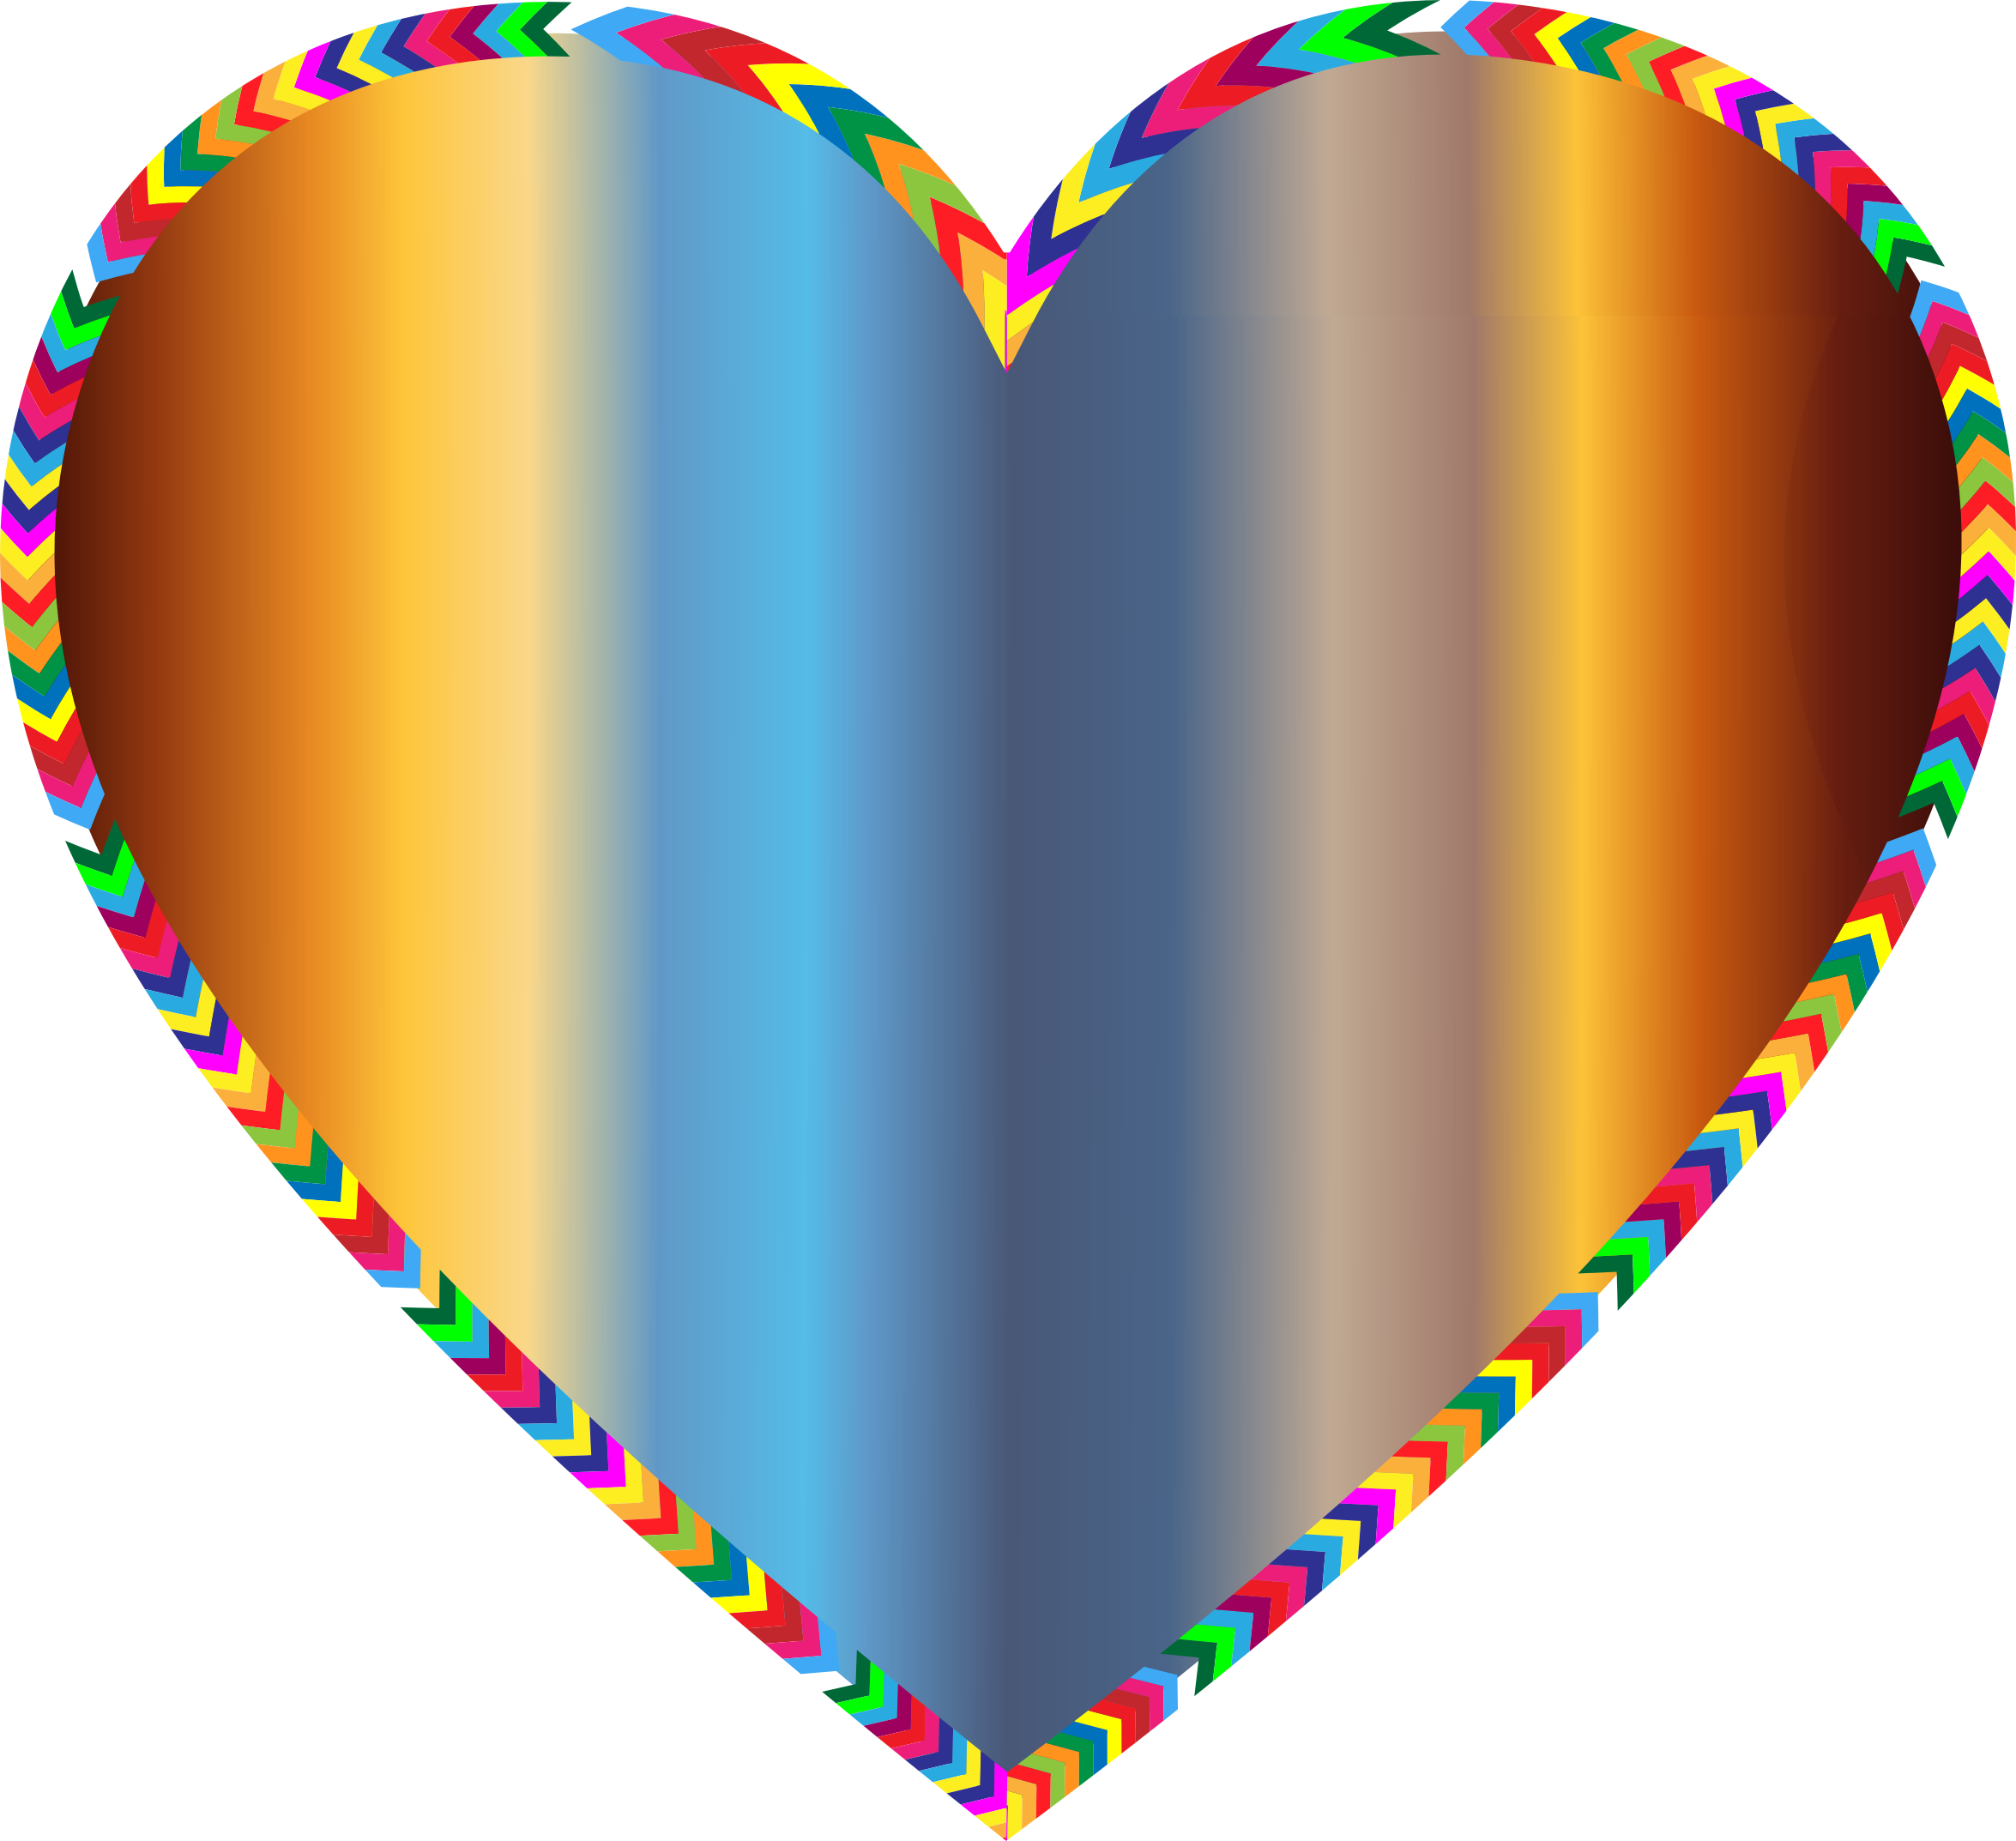 Clipart - Multicolored Arrows Heart Filled 5